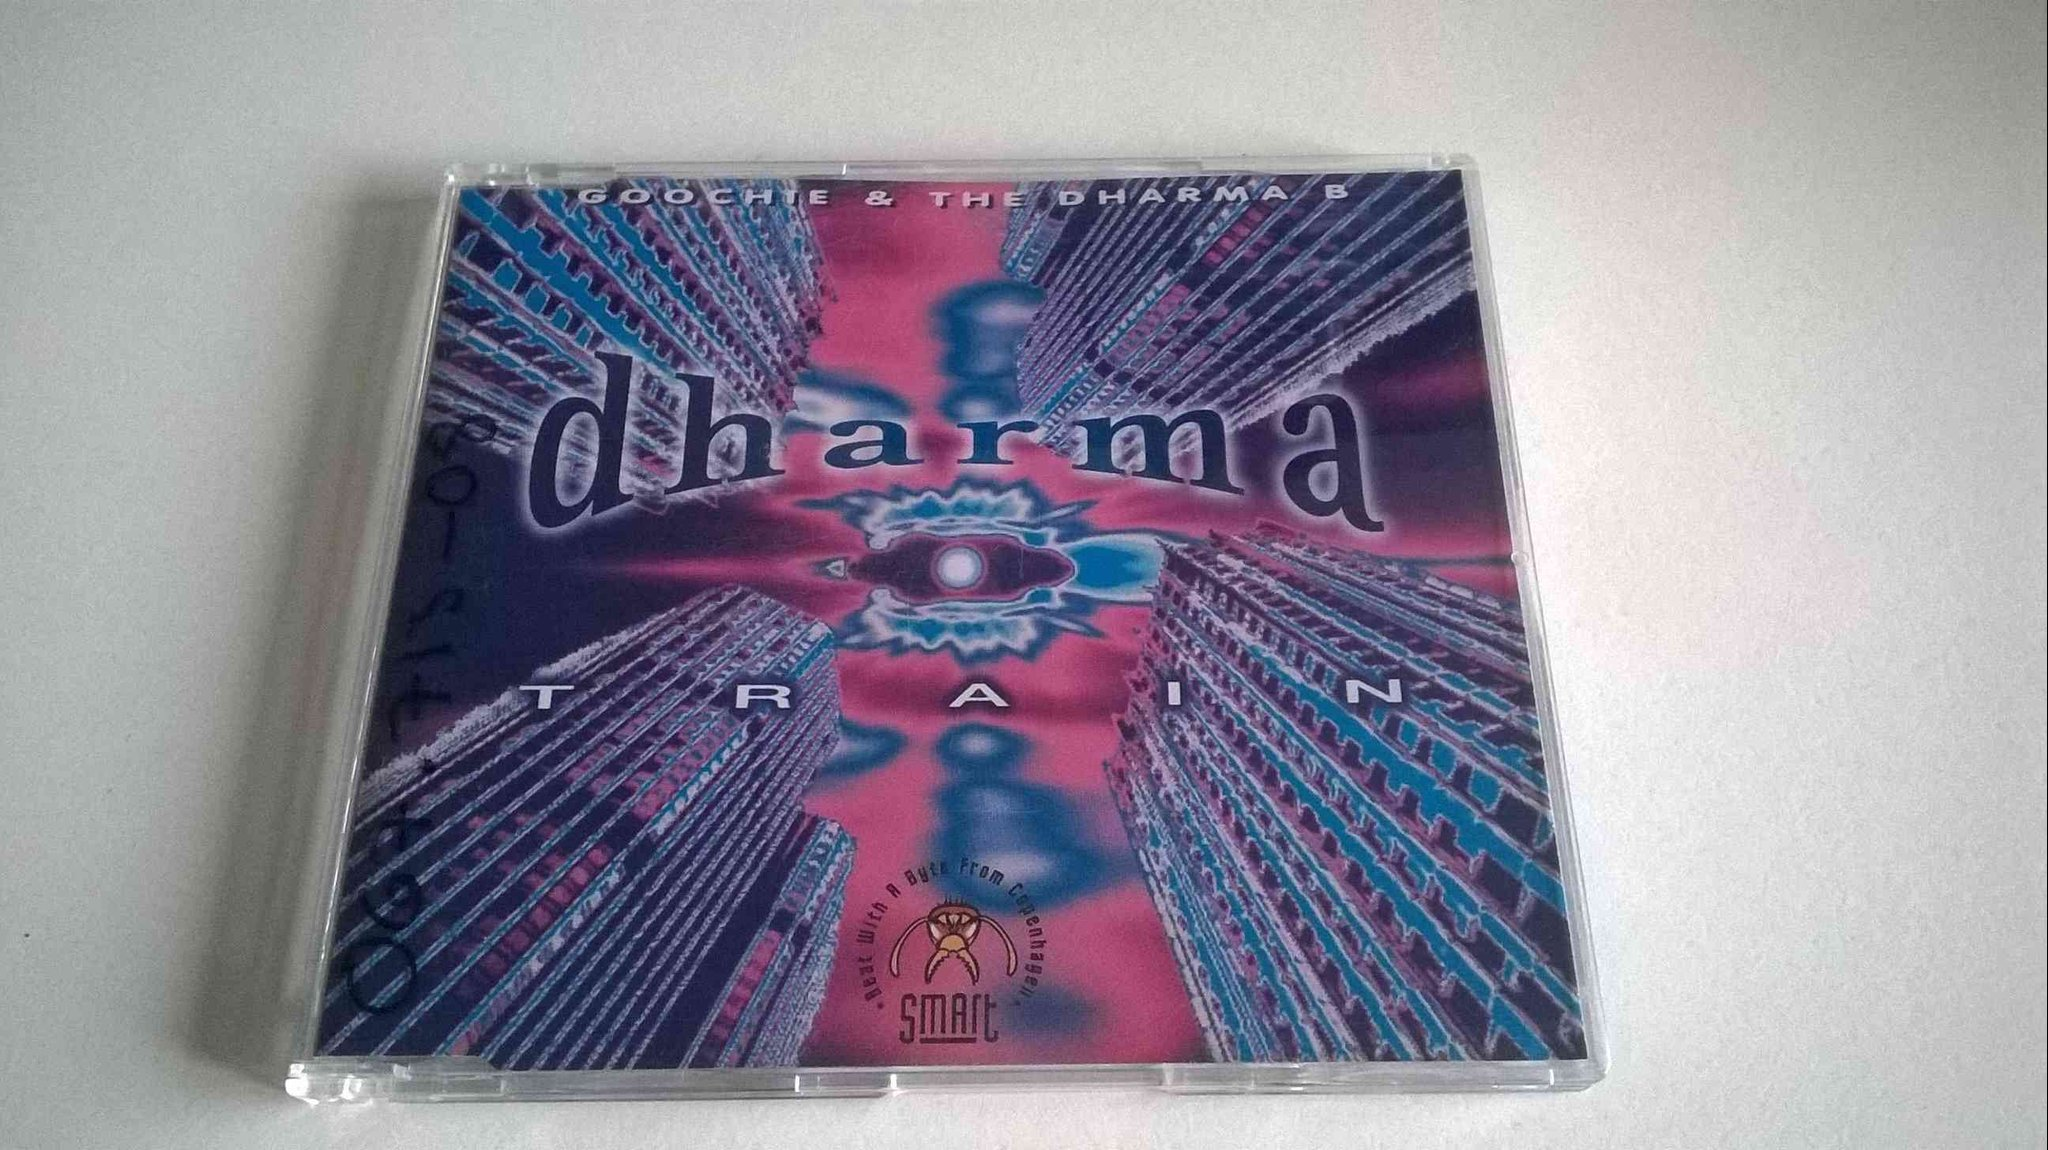 Goochie & The Dharma B - Train, CD